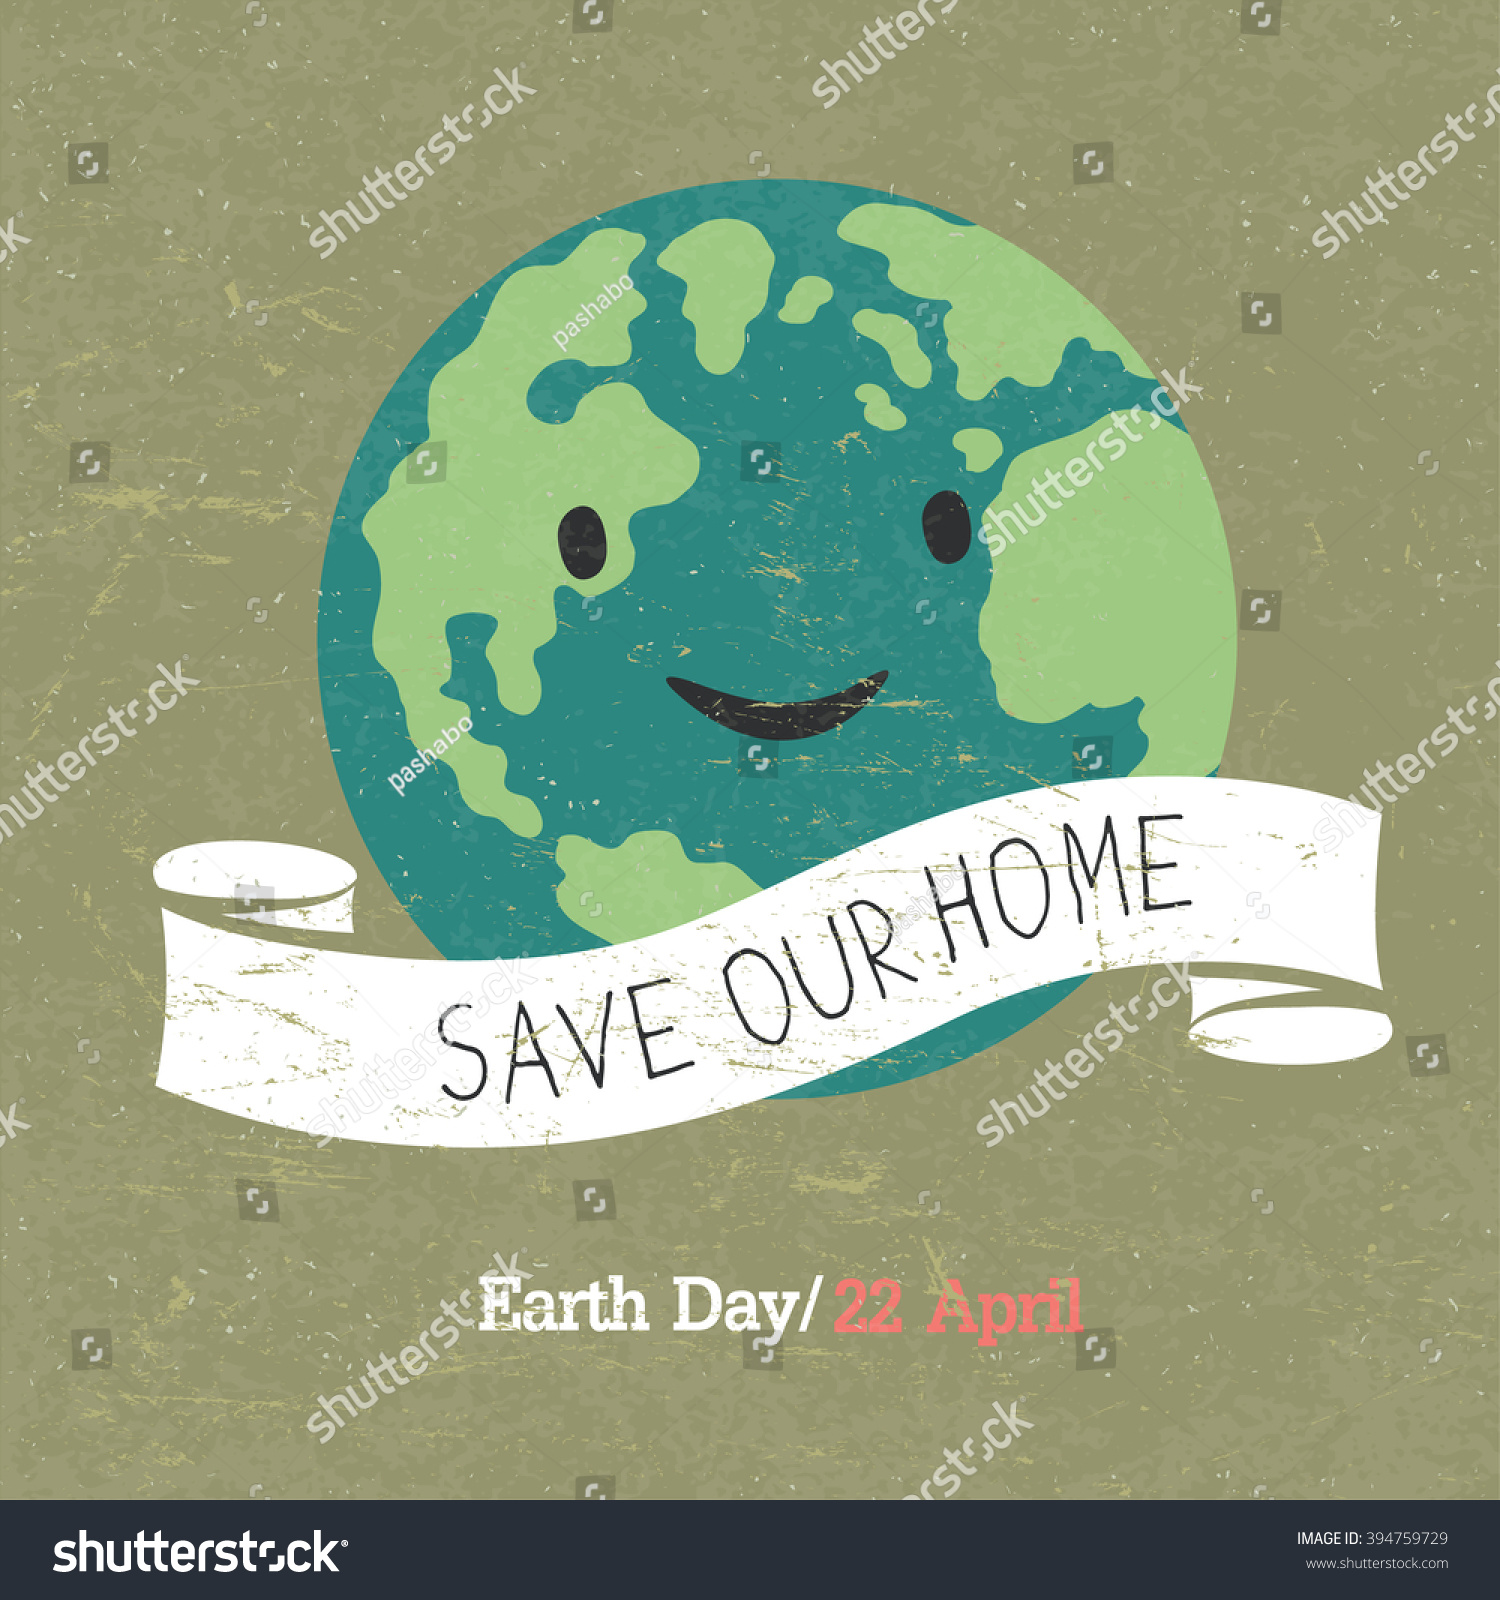 Poster design on save earth - Vintage Earth Day Poster Cartoon Earth Illustration Text On White Ribbon On Grunge